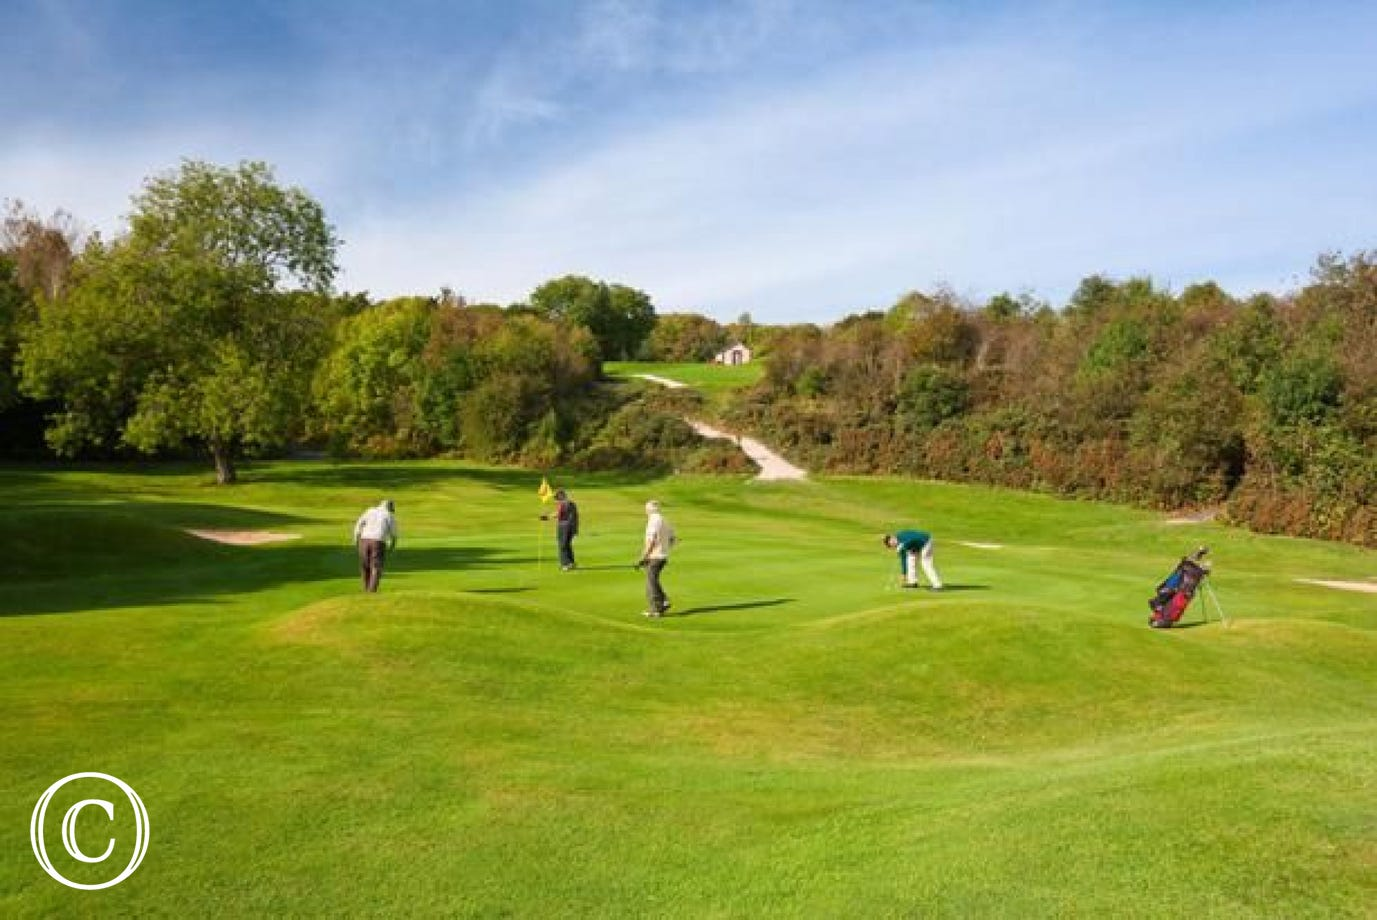 Mold Golf Club - one of 16 golf courses within 10 miles of the cottage